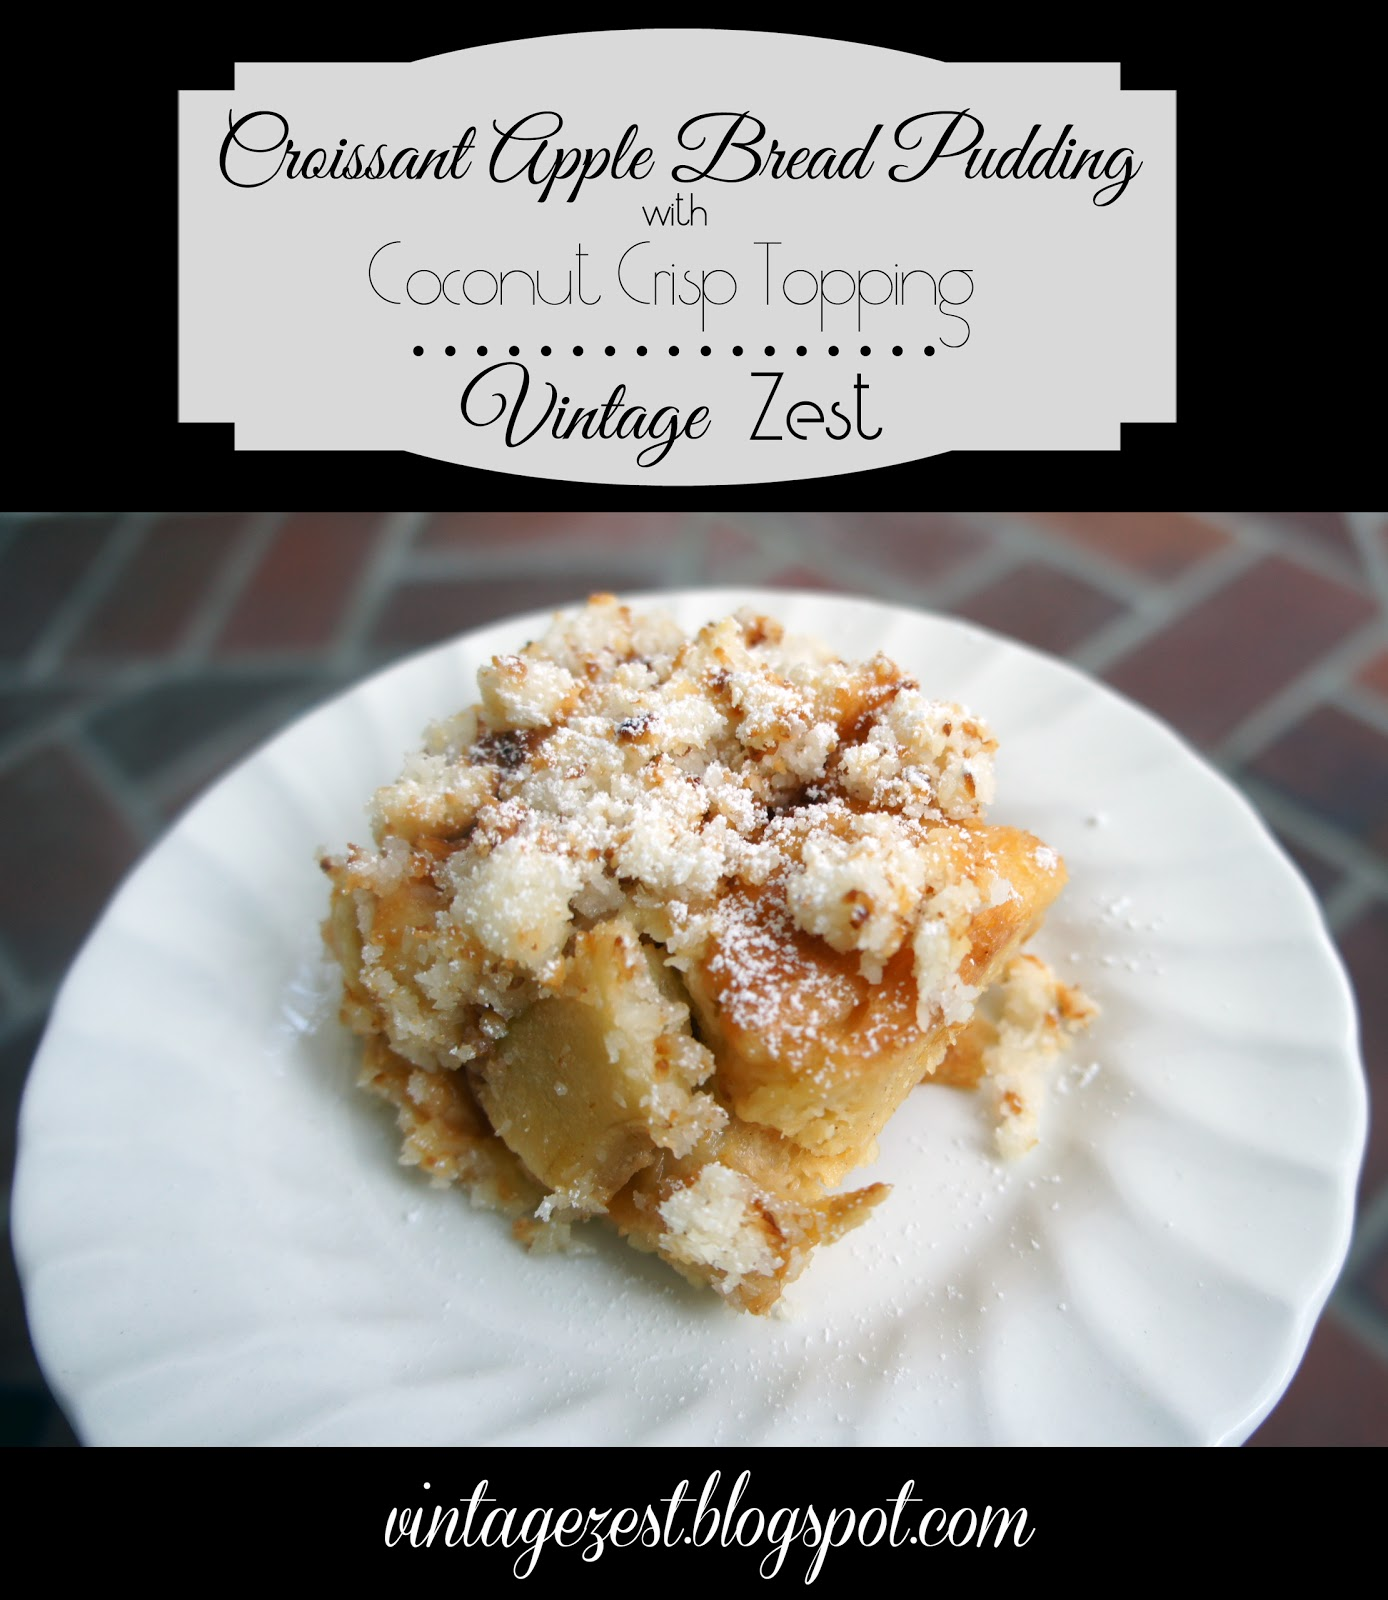 Sweet 16 - Delicious Desserts for World Baking Day on Diane's Vintage Zest!